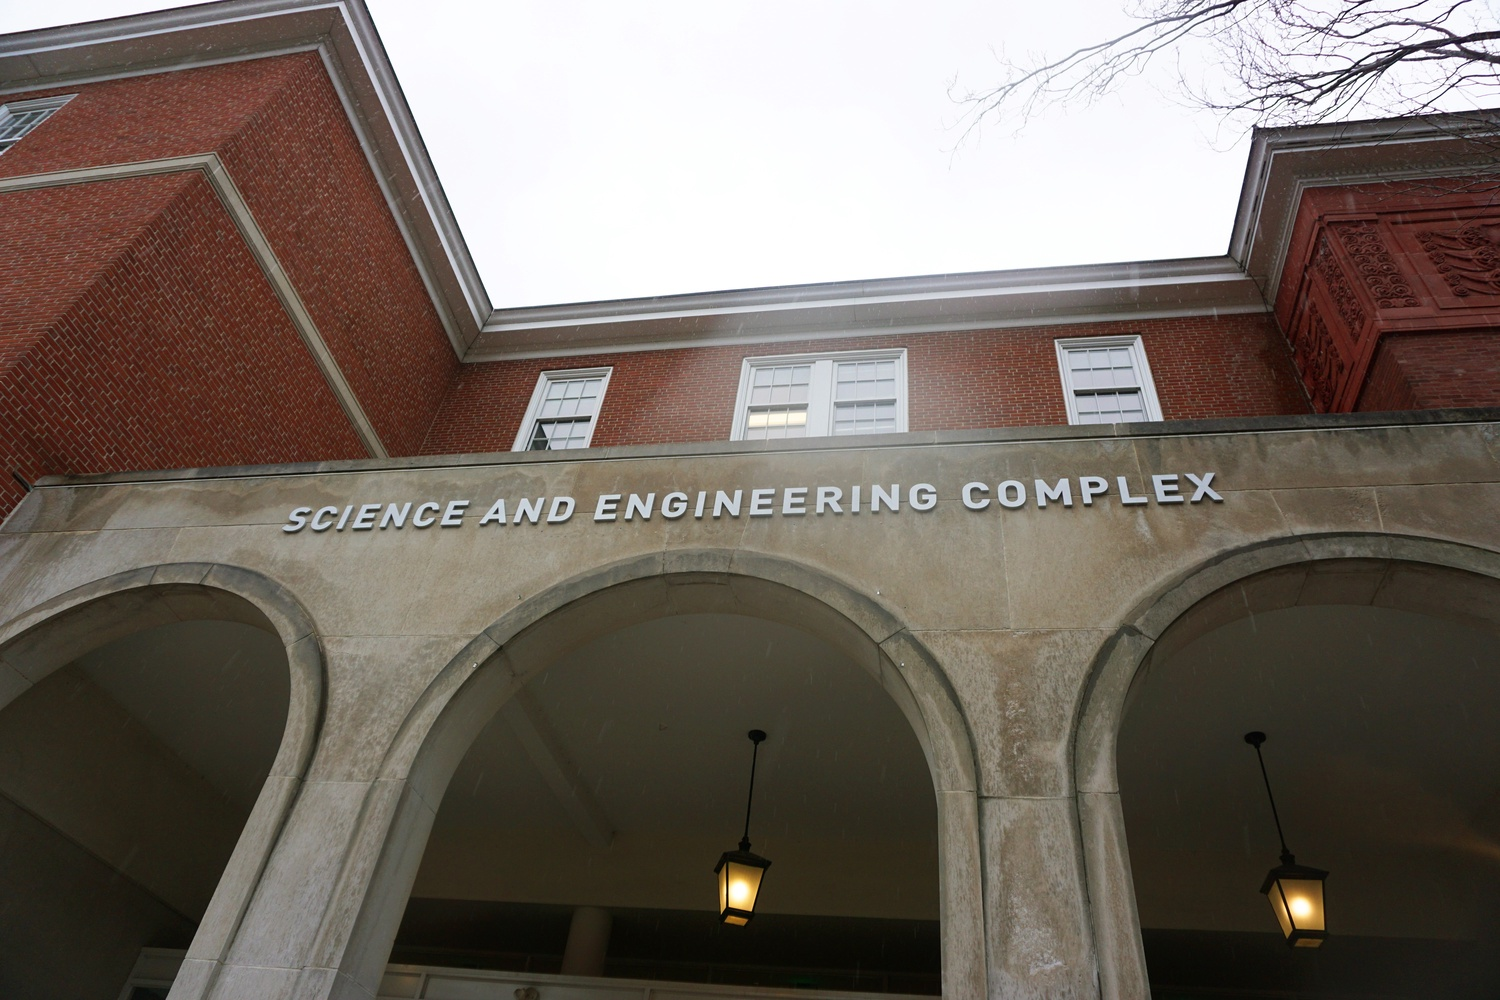 Tufts University School of Engineering